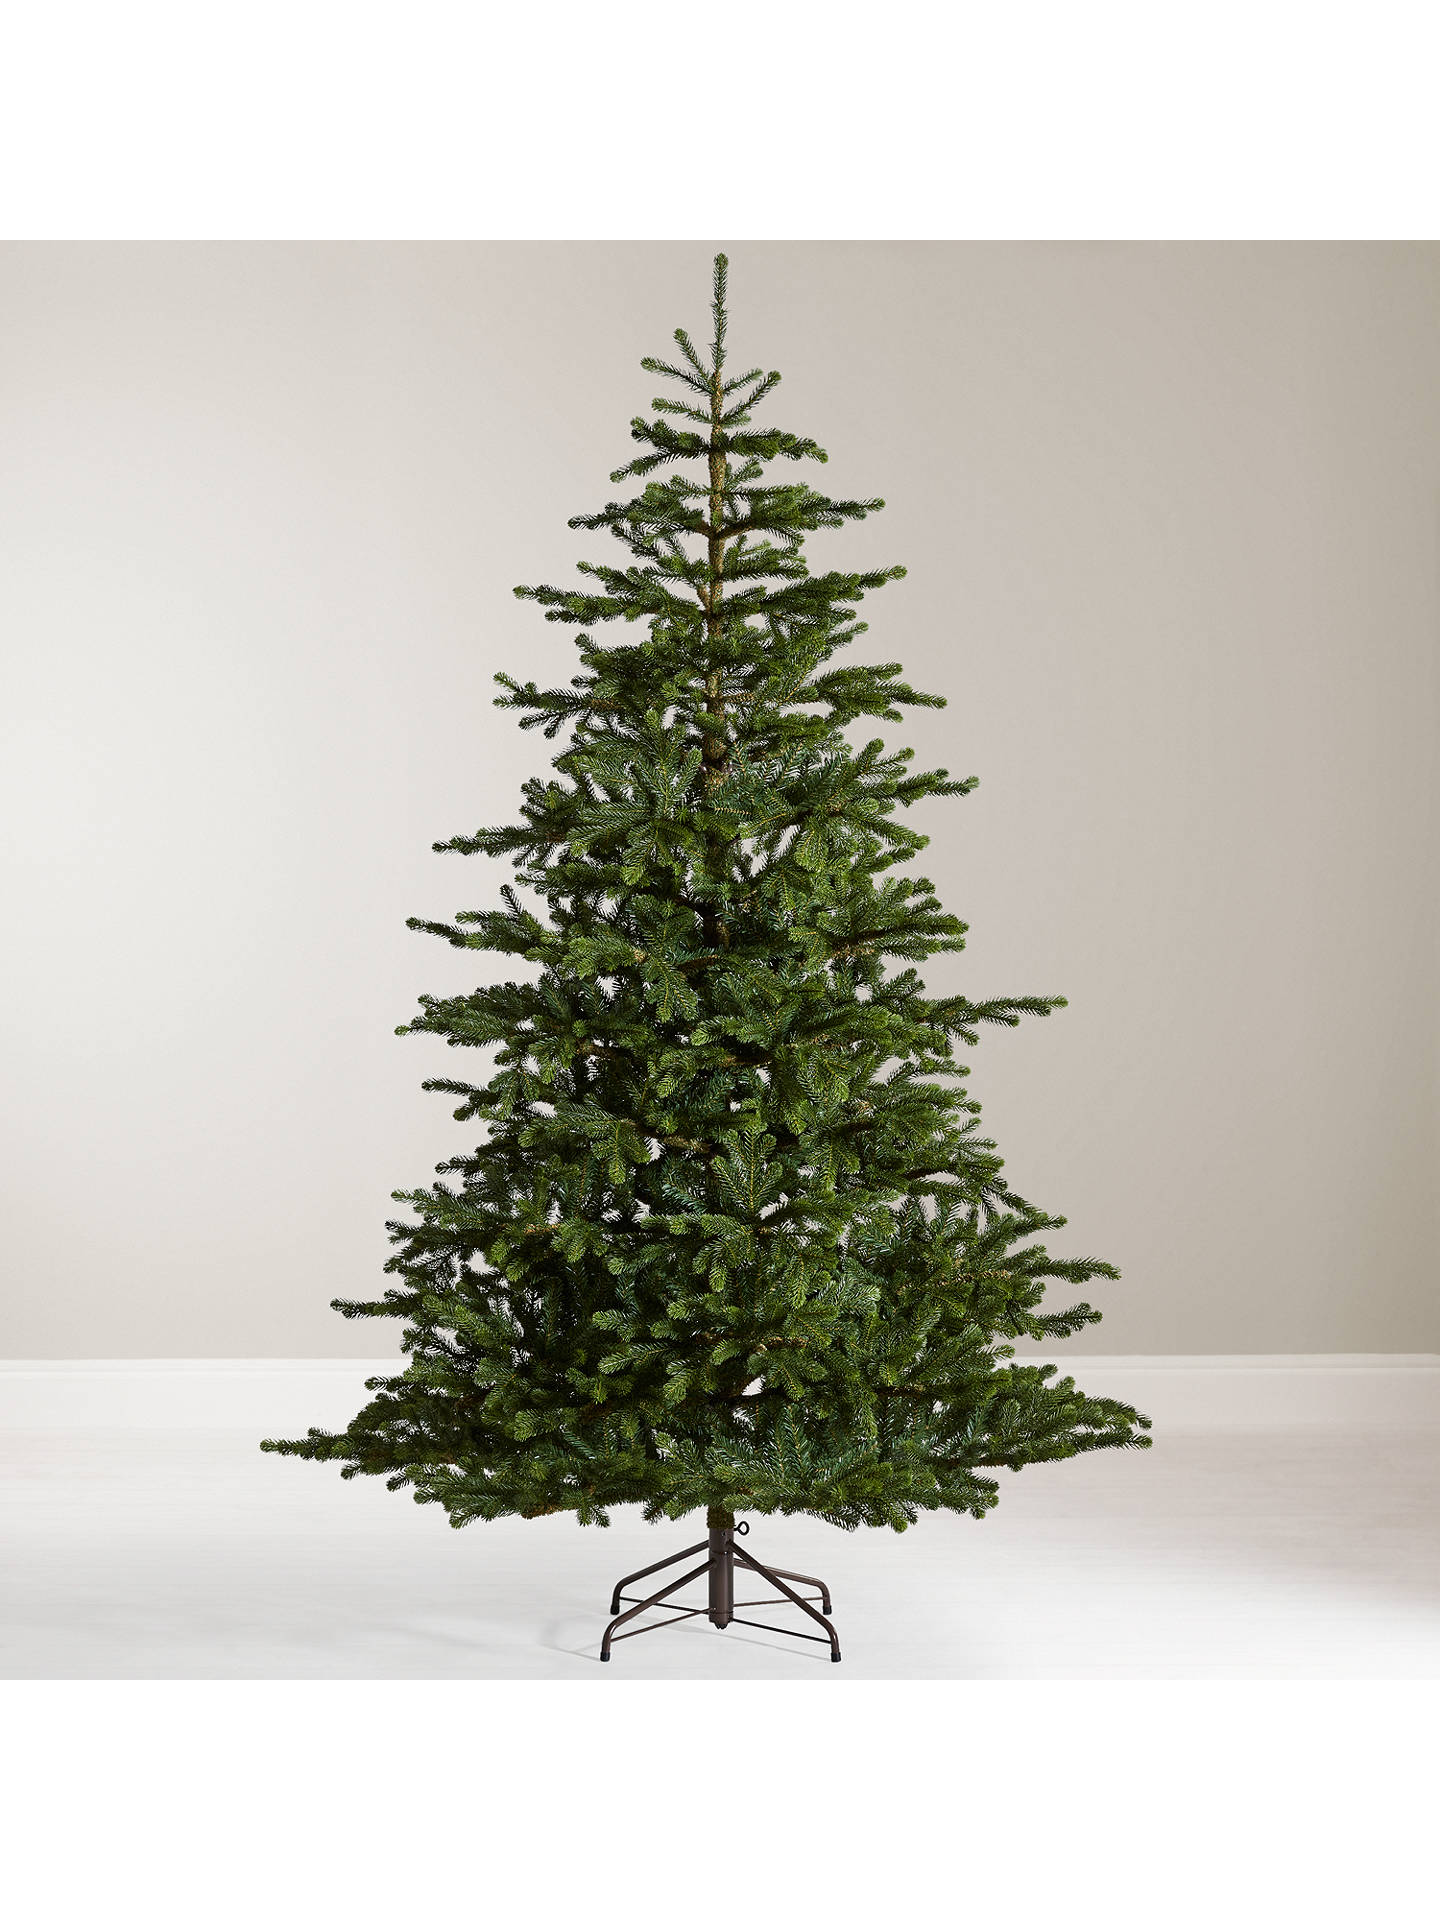 John Lewis Christmas Tree.John Lewis Peruvian Pine Christmas Tree 7ft At John Lewis